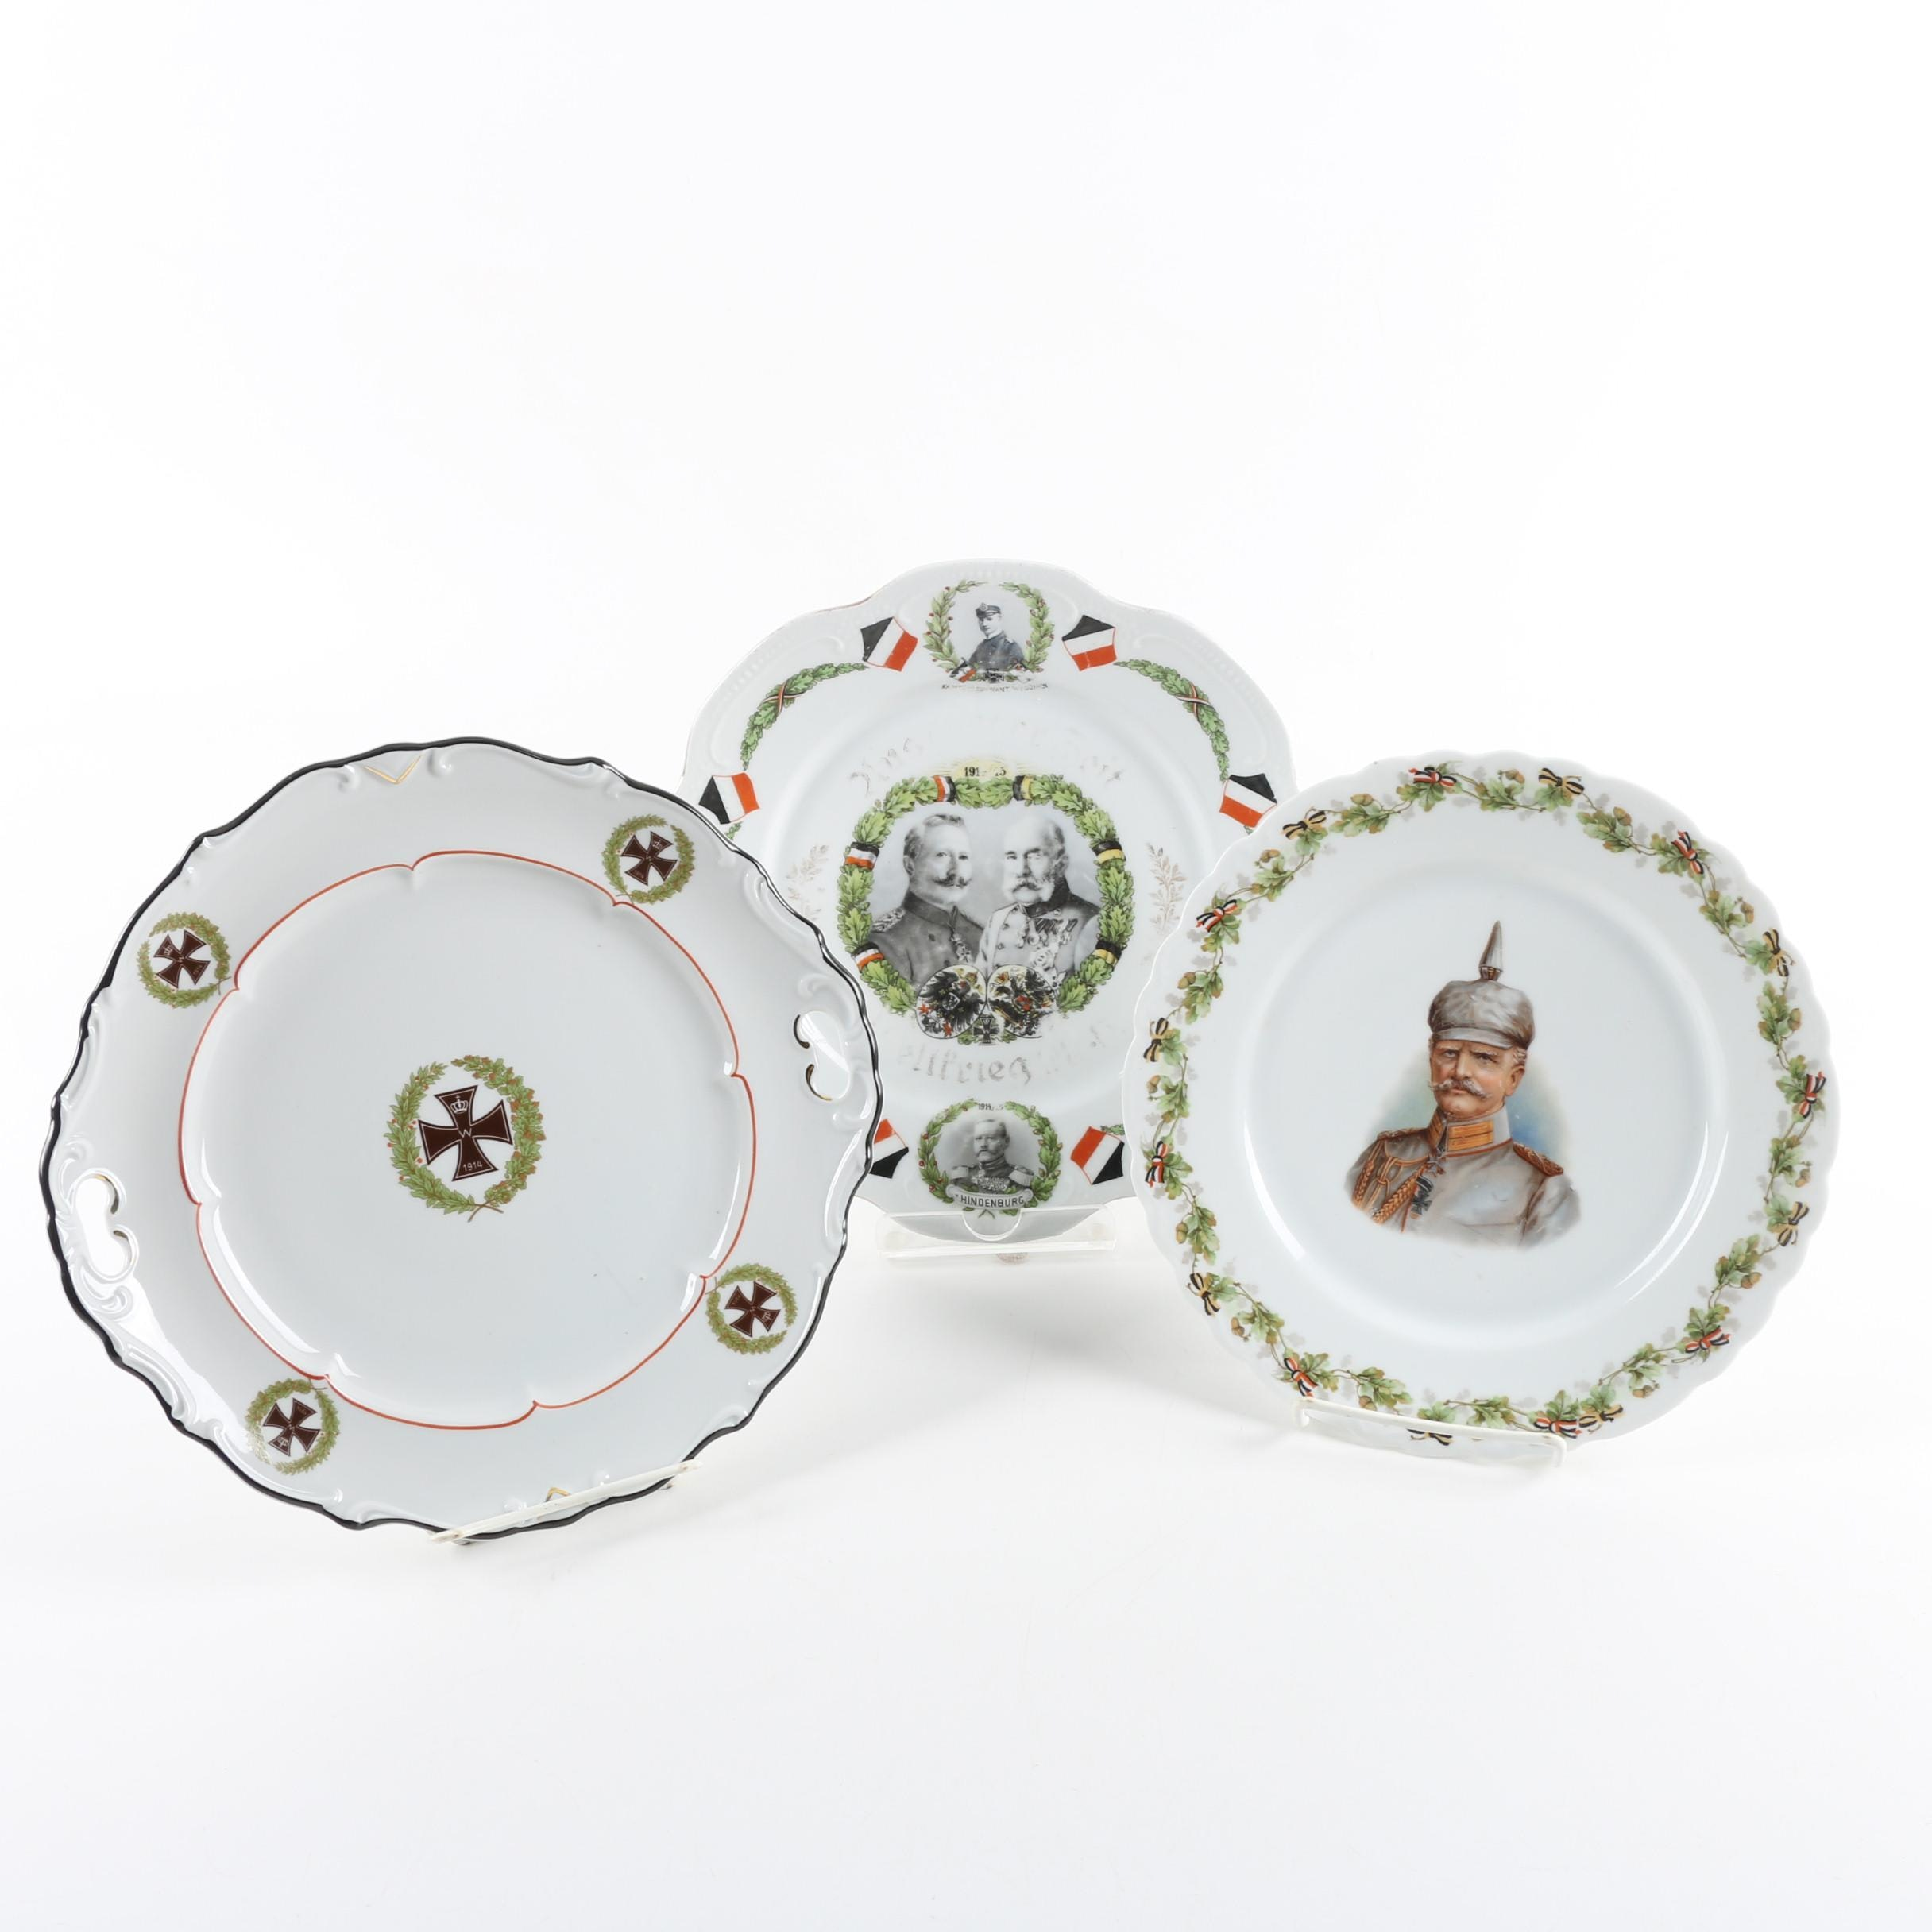 Porcelain WWI-Themed German Plates and Platter